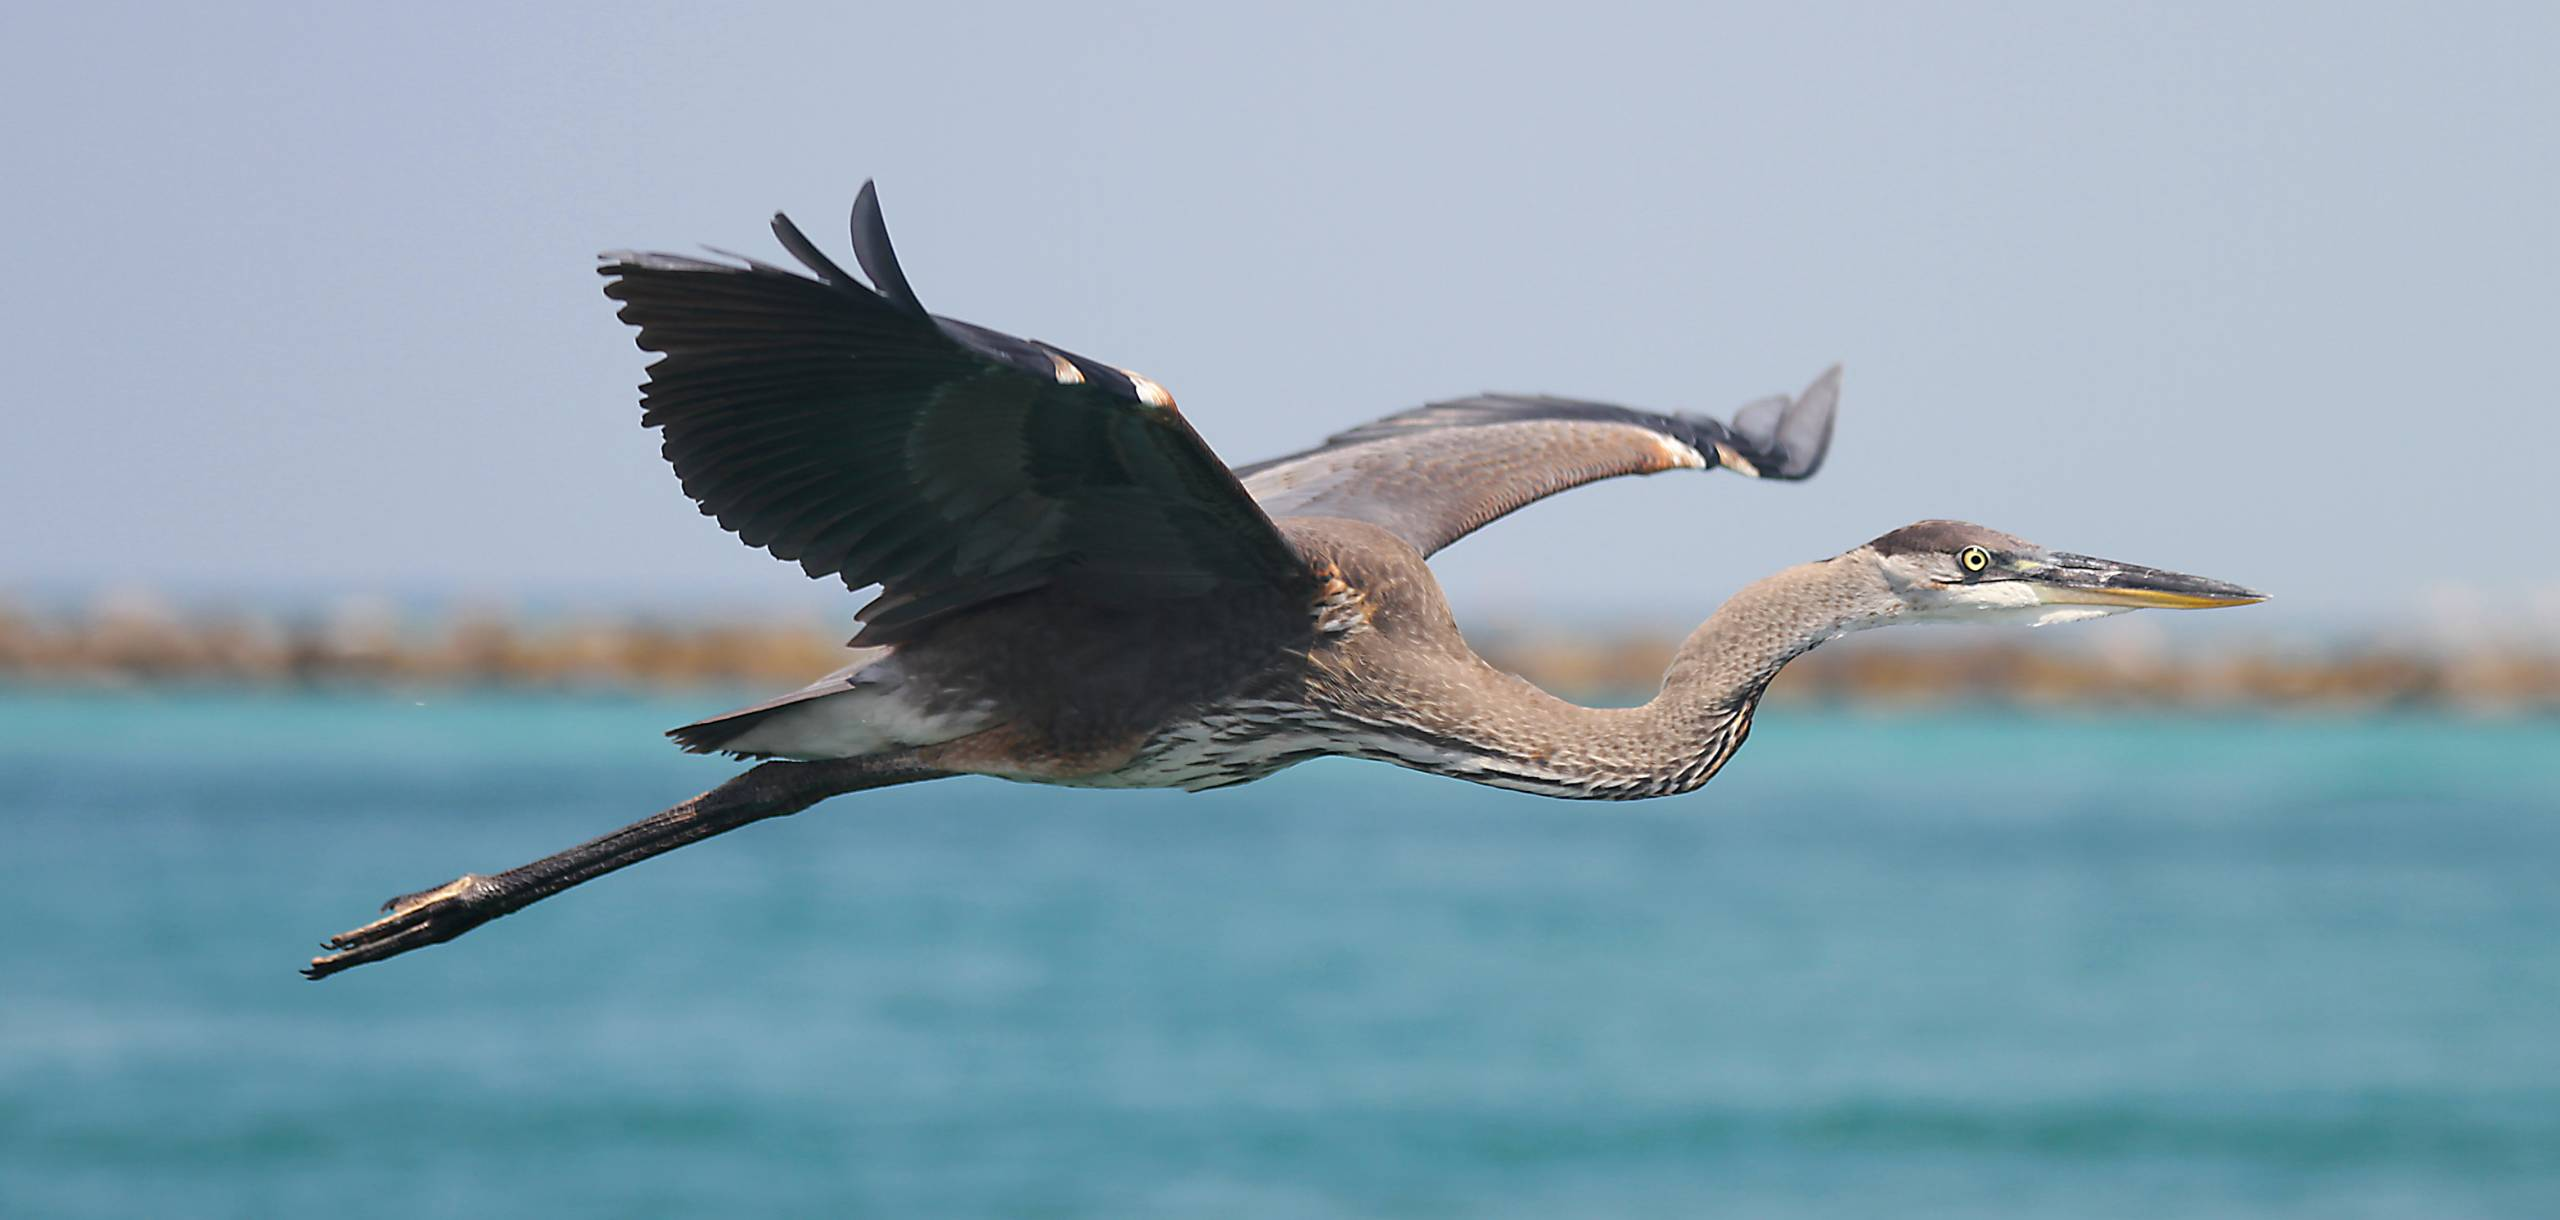 Blue Heron flying over Little Lagoon near our Gulf front homes on West Beach in Gulf Shores Alabama